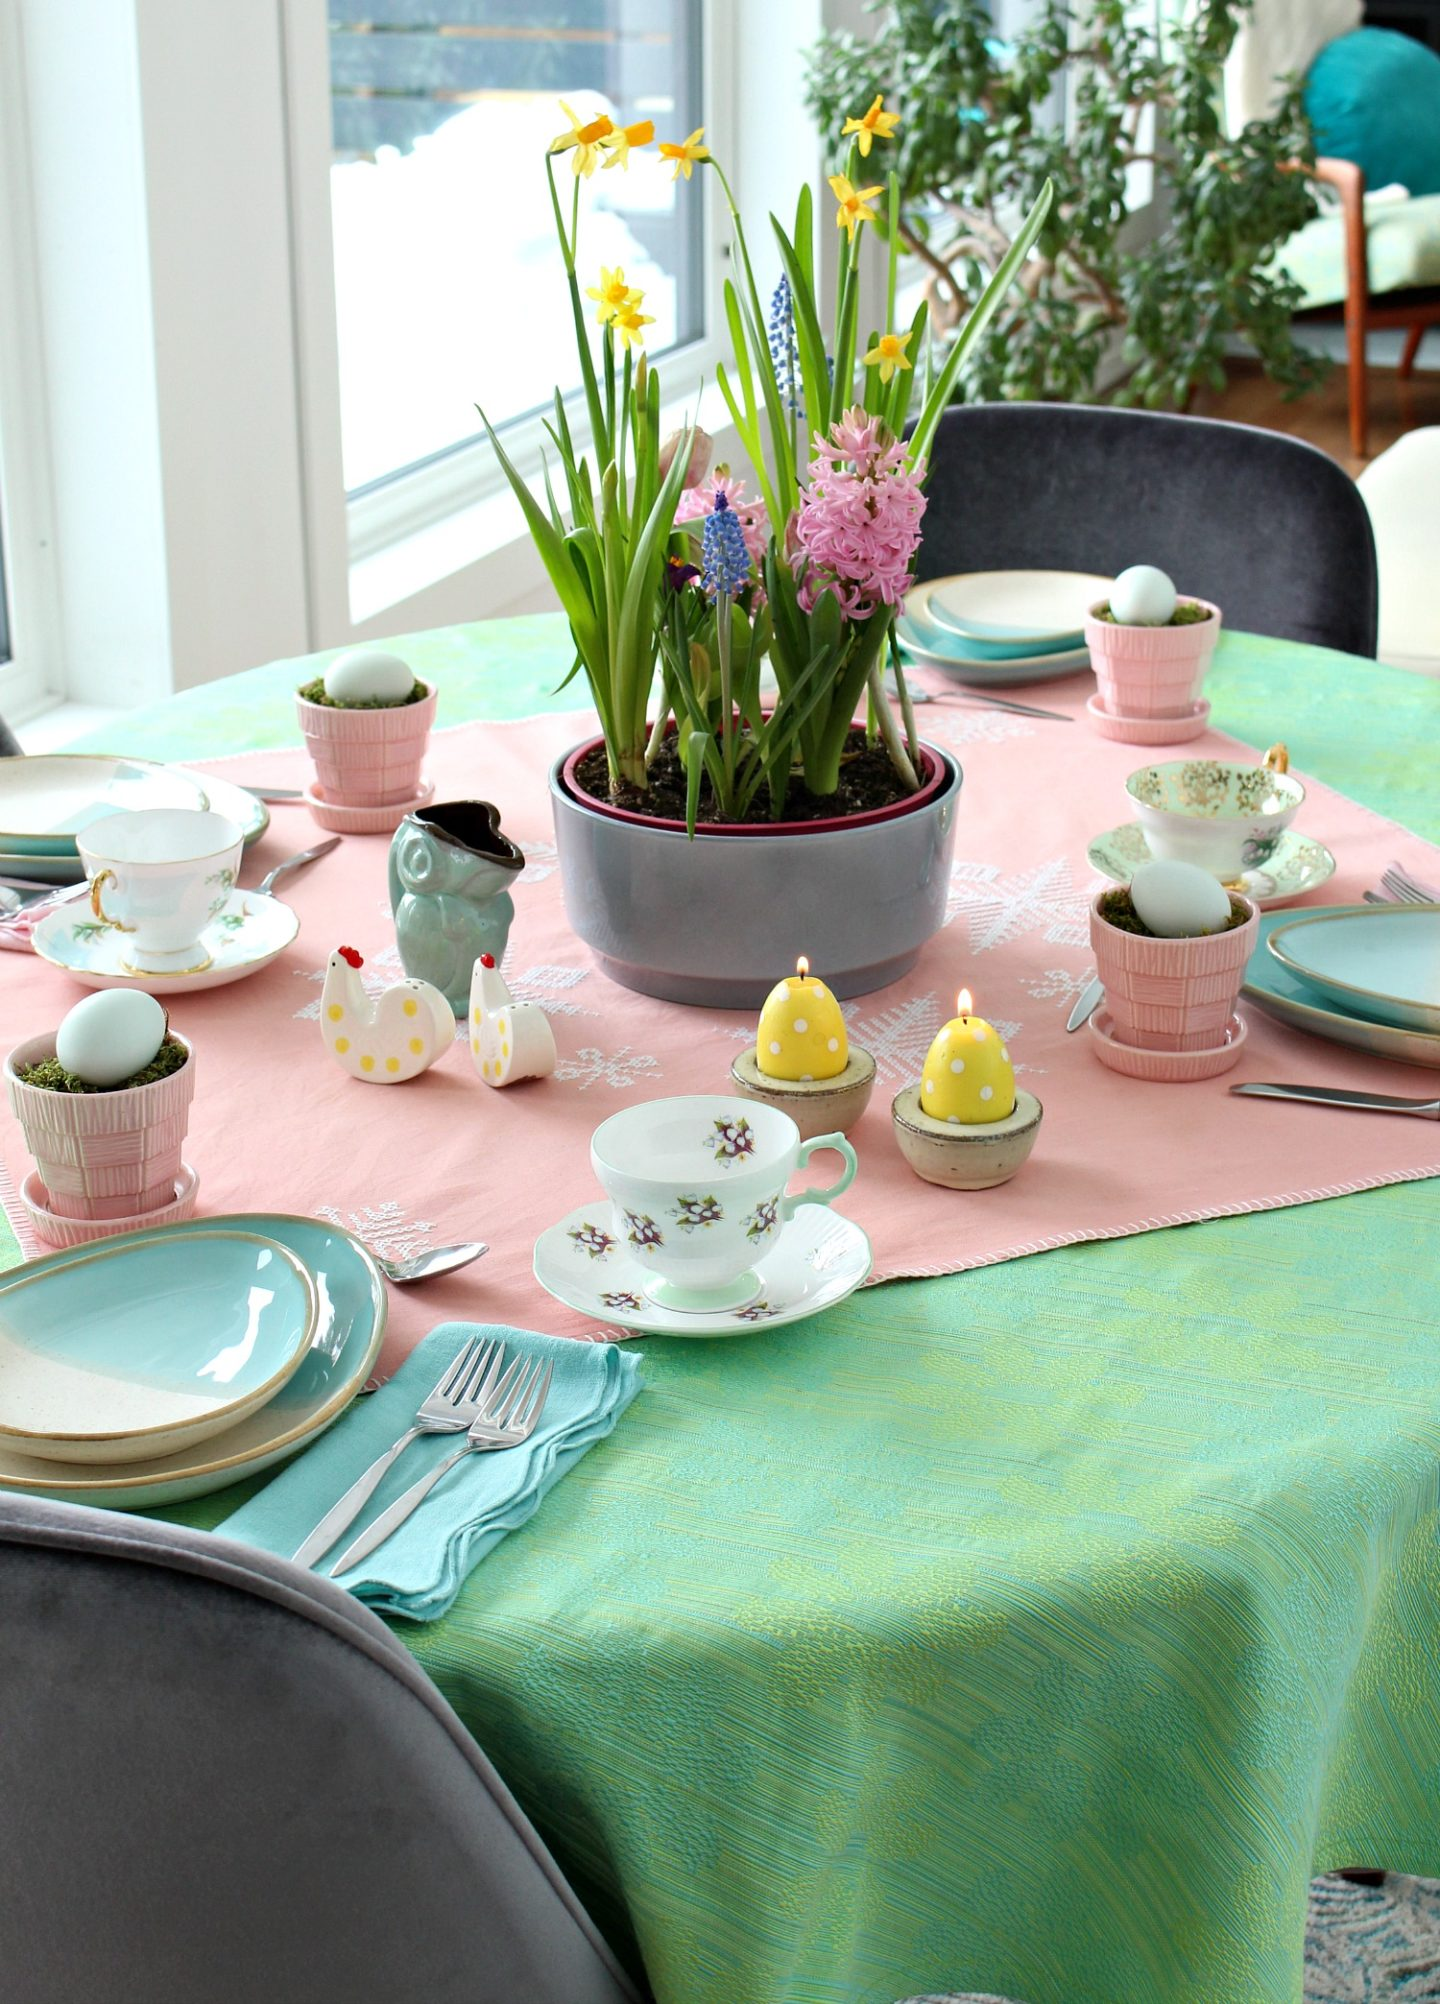 lime green table cloth with pink and aqua decor